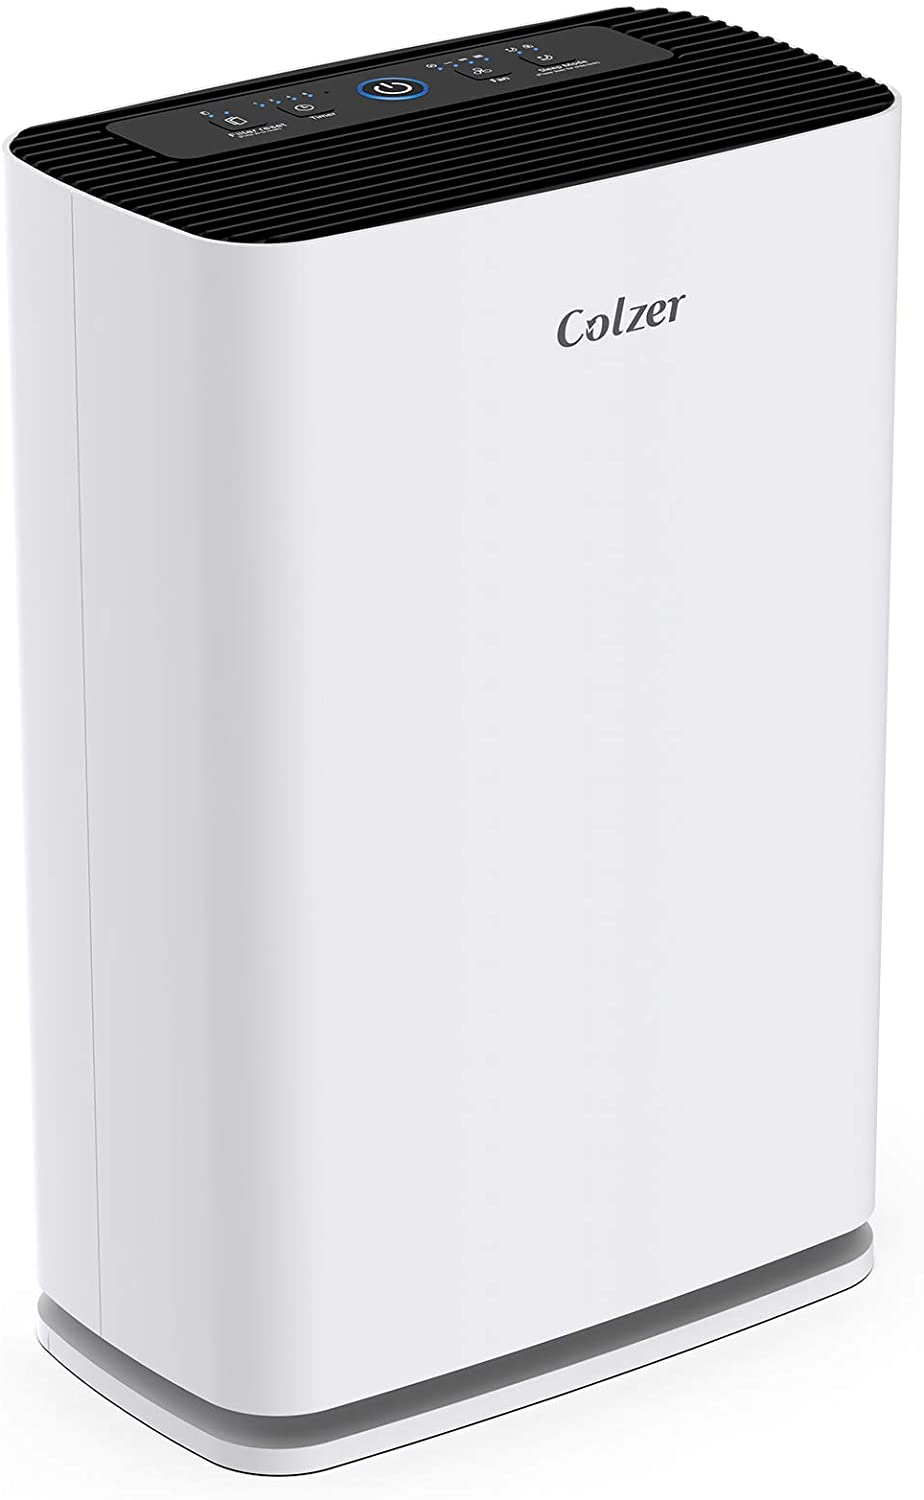 Amazon Com Colzer Air Purifier With True Hepa Air Filter Air Purifier For Large Room For Spaces Up To 800 Sq Ft Perfect For Home Office With Filter Home Kitchen